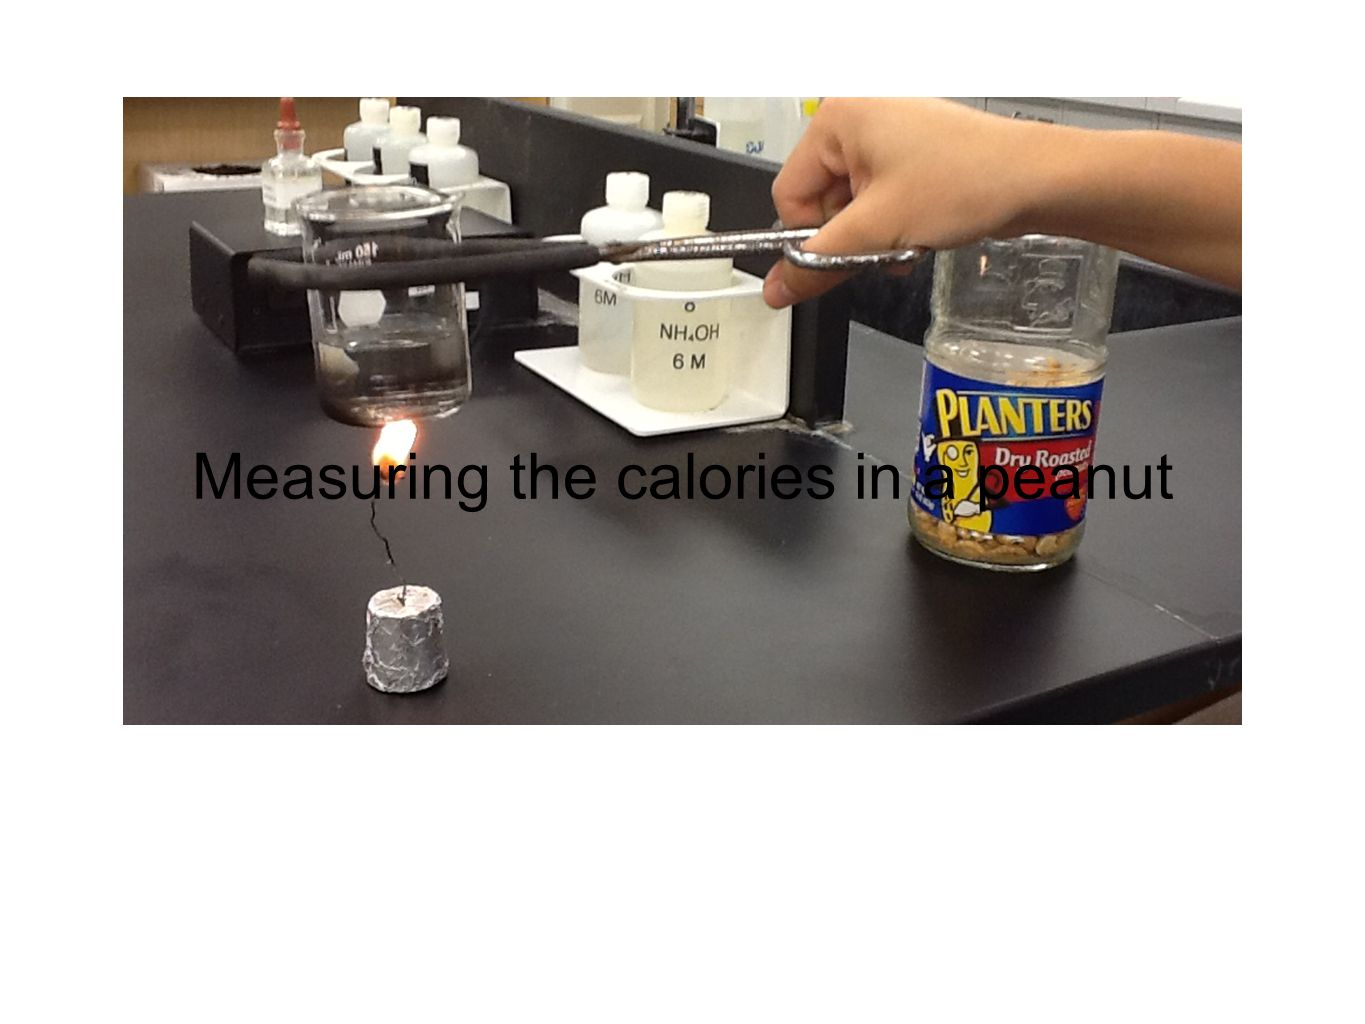 Measuring the calories in a peanut